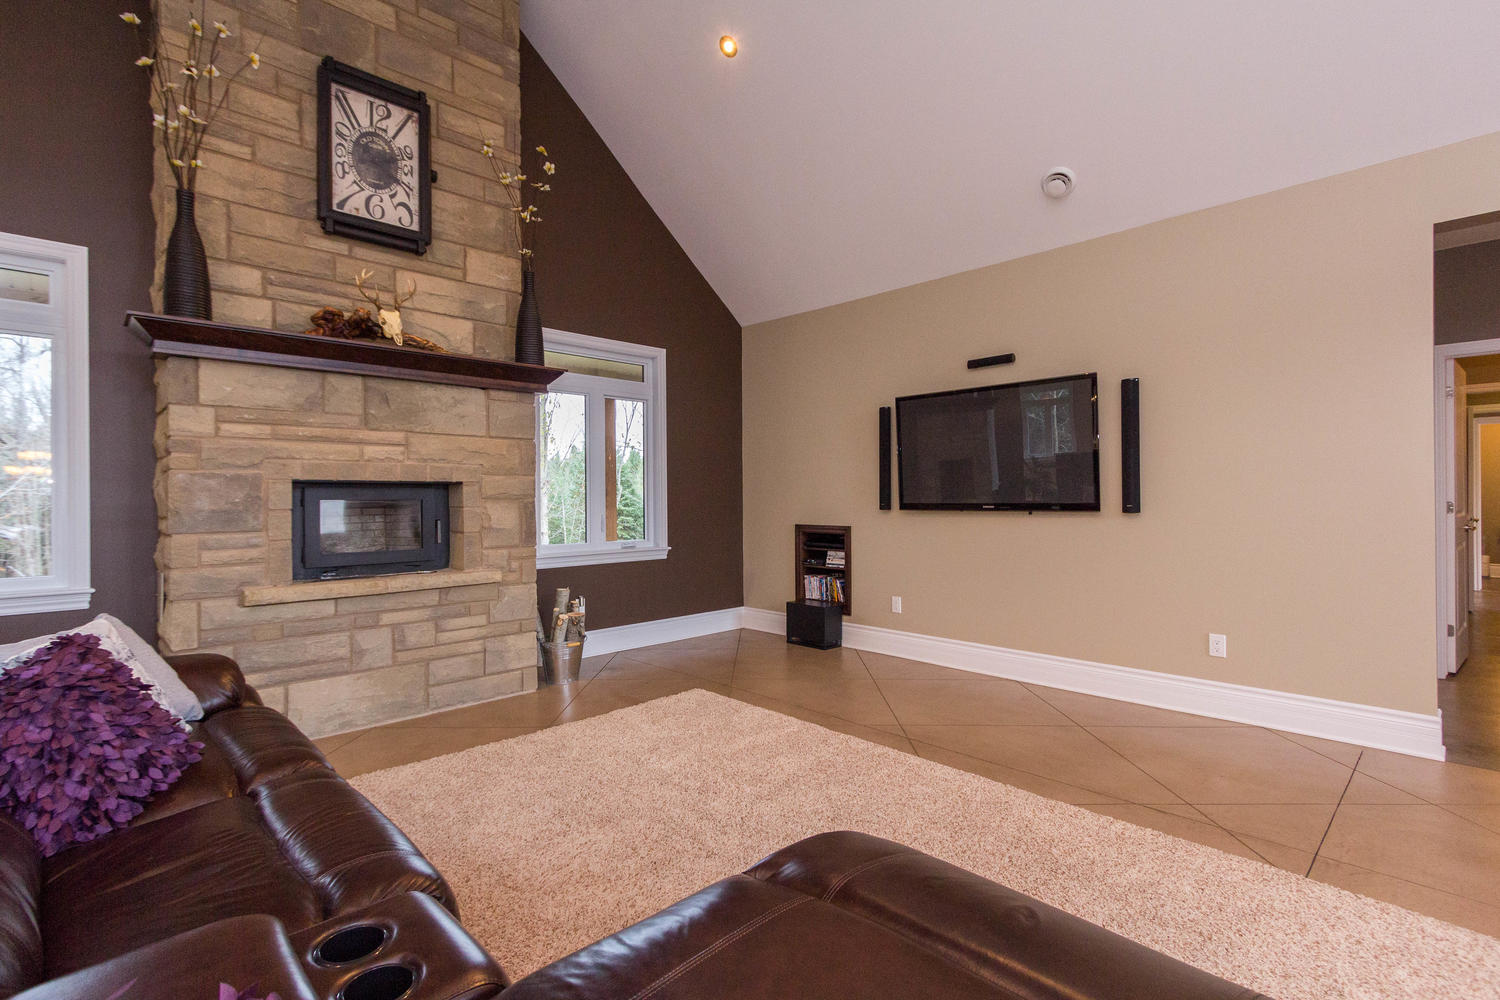 Large open living area that features a beautiful custom built stone fireplace, concrete heated flooring, flat screen TV with mount and stereo equipment included